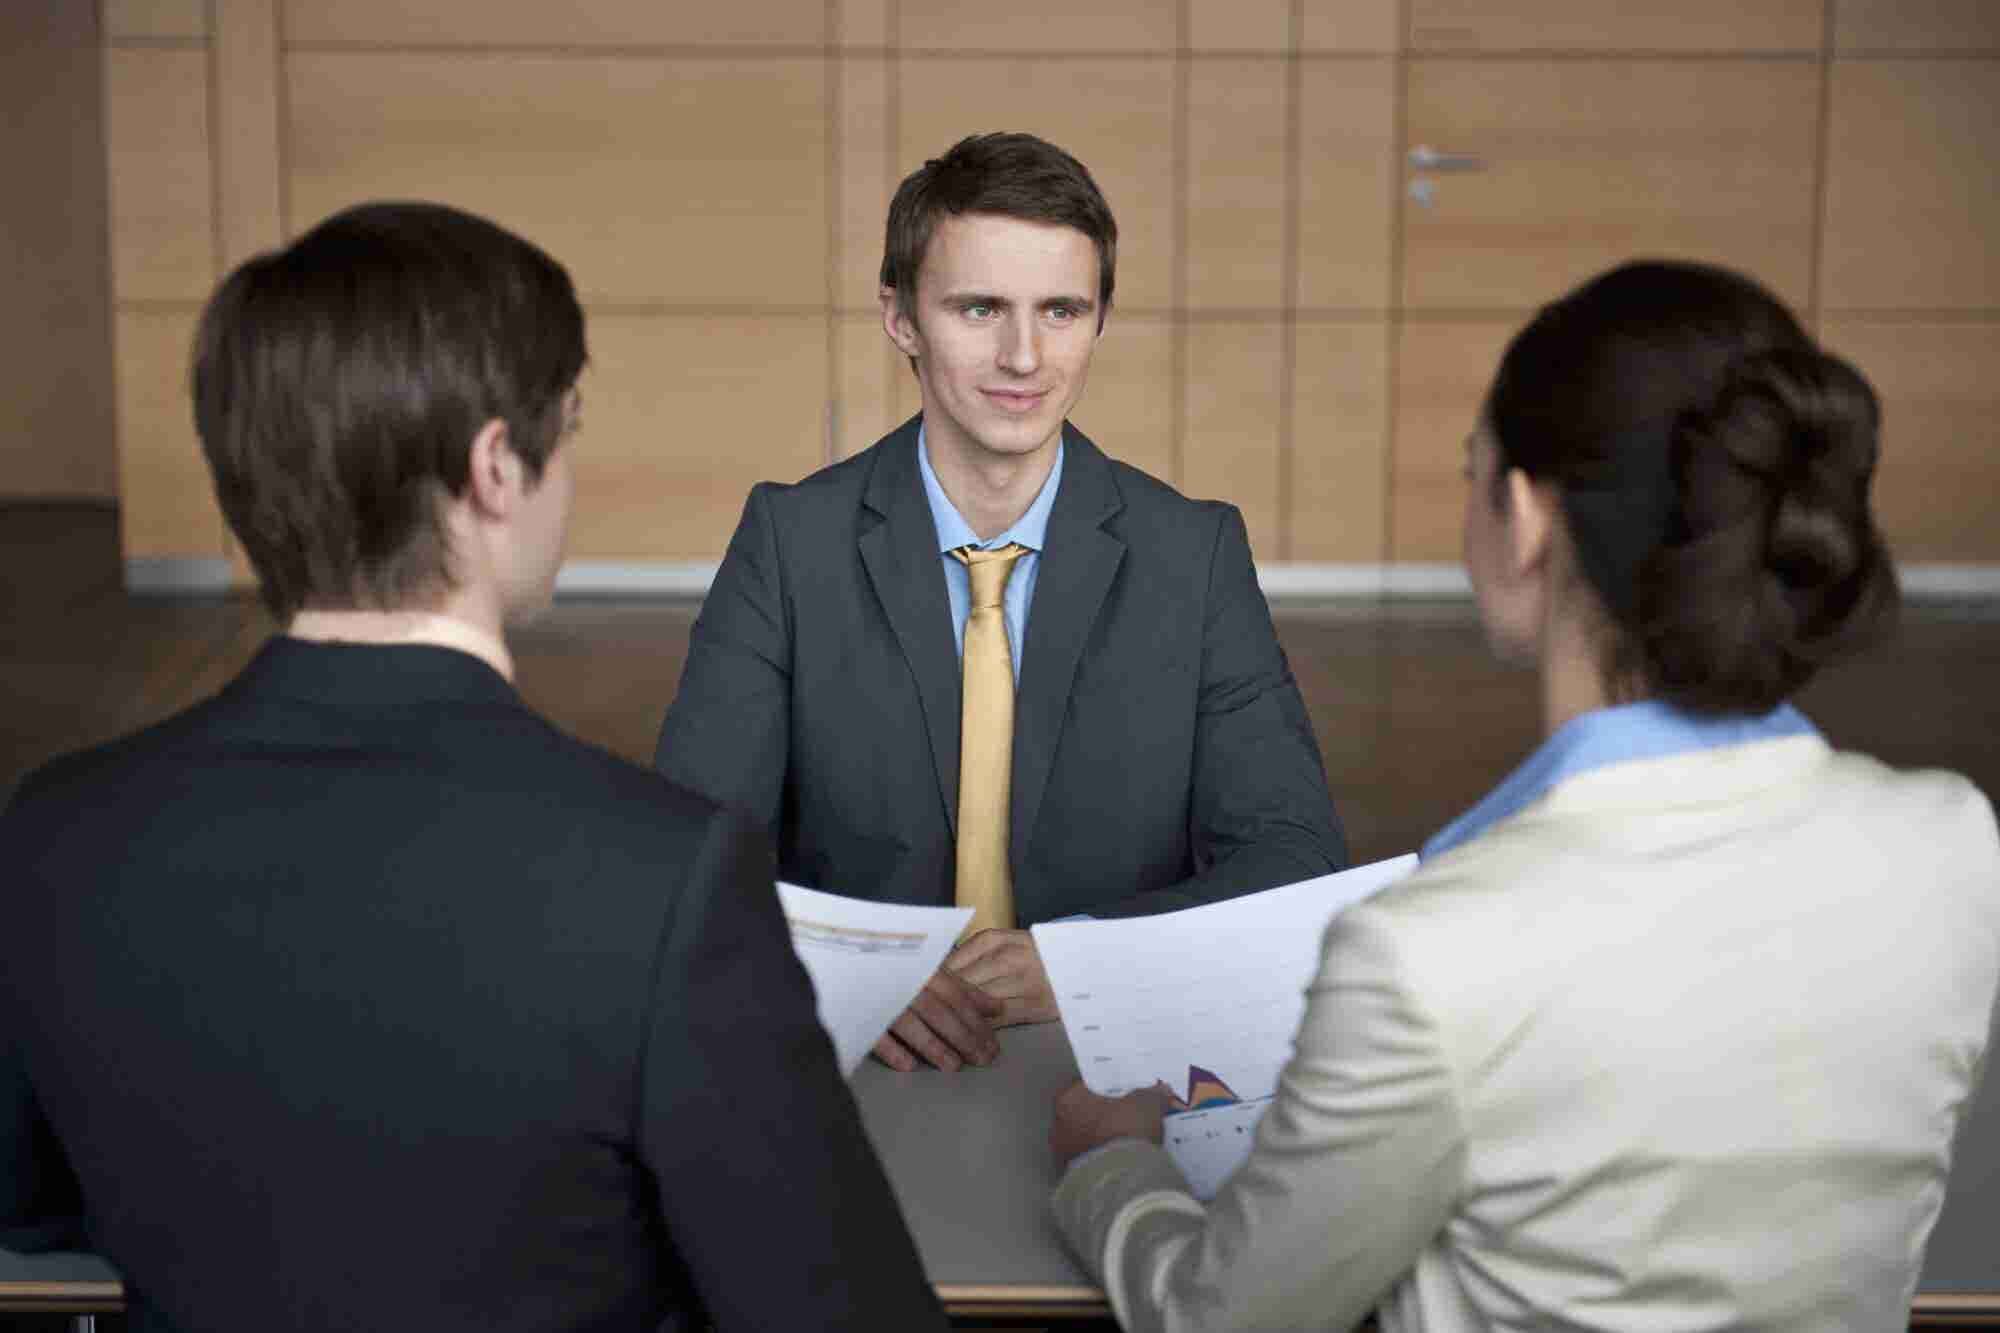 5 Signs a Candidate Is Lying or Exaggerating